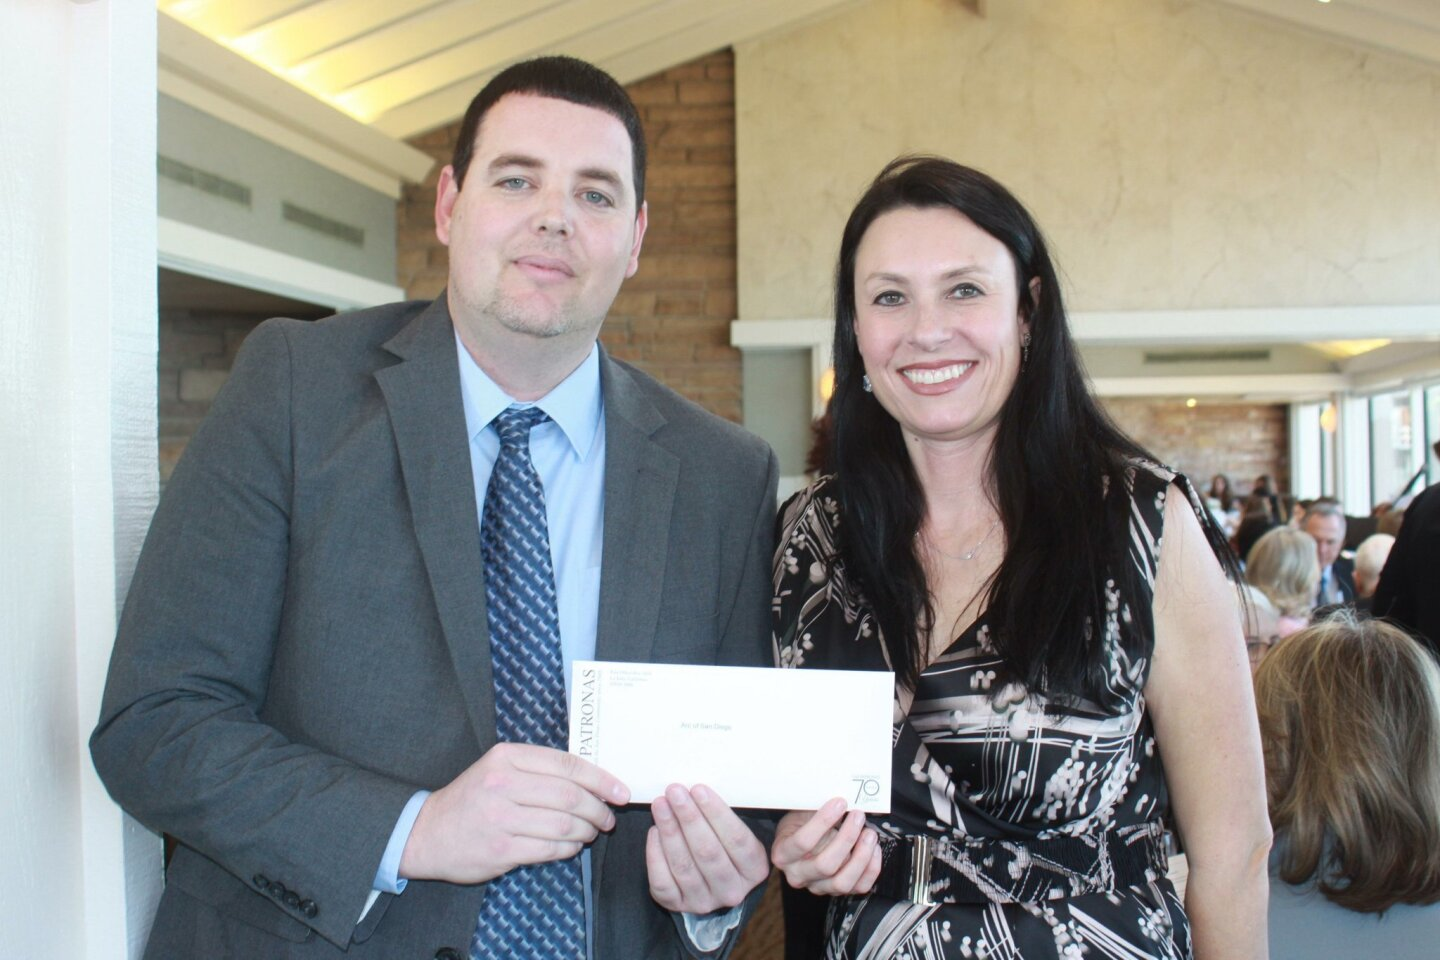 Chris Shilling and Jennifer Navarra from the Arc of San Diego with their check, which will fund exercise equipment for persons with disabilities.